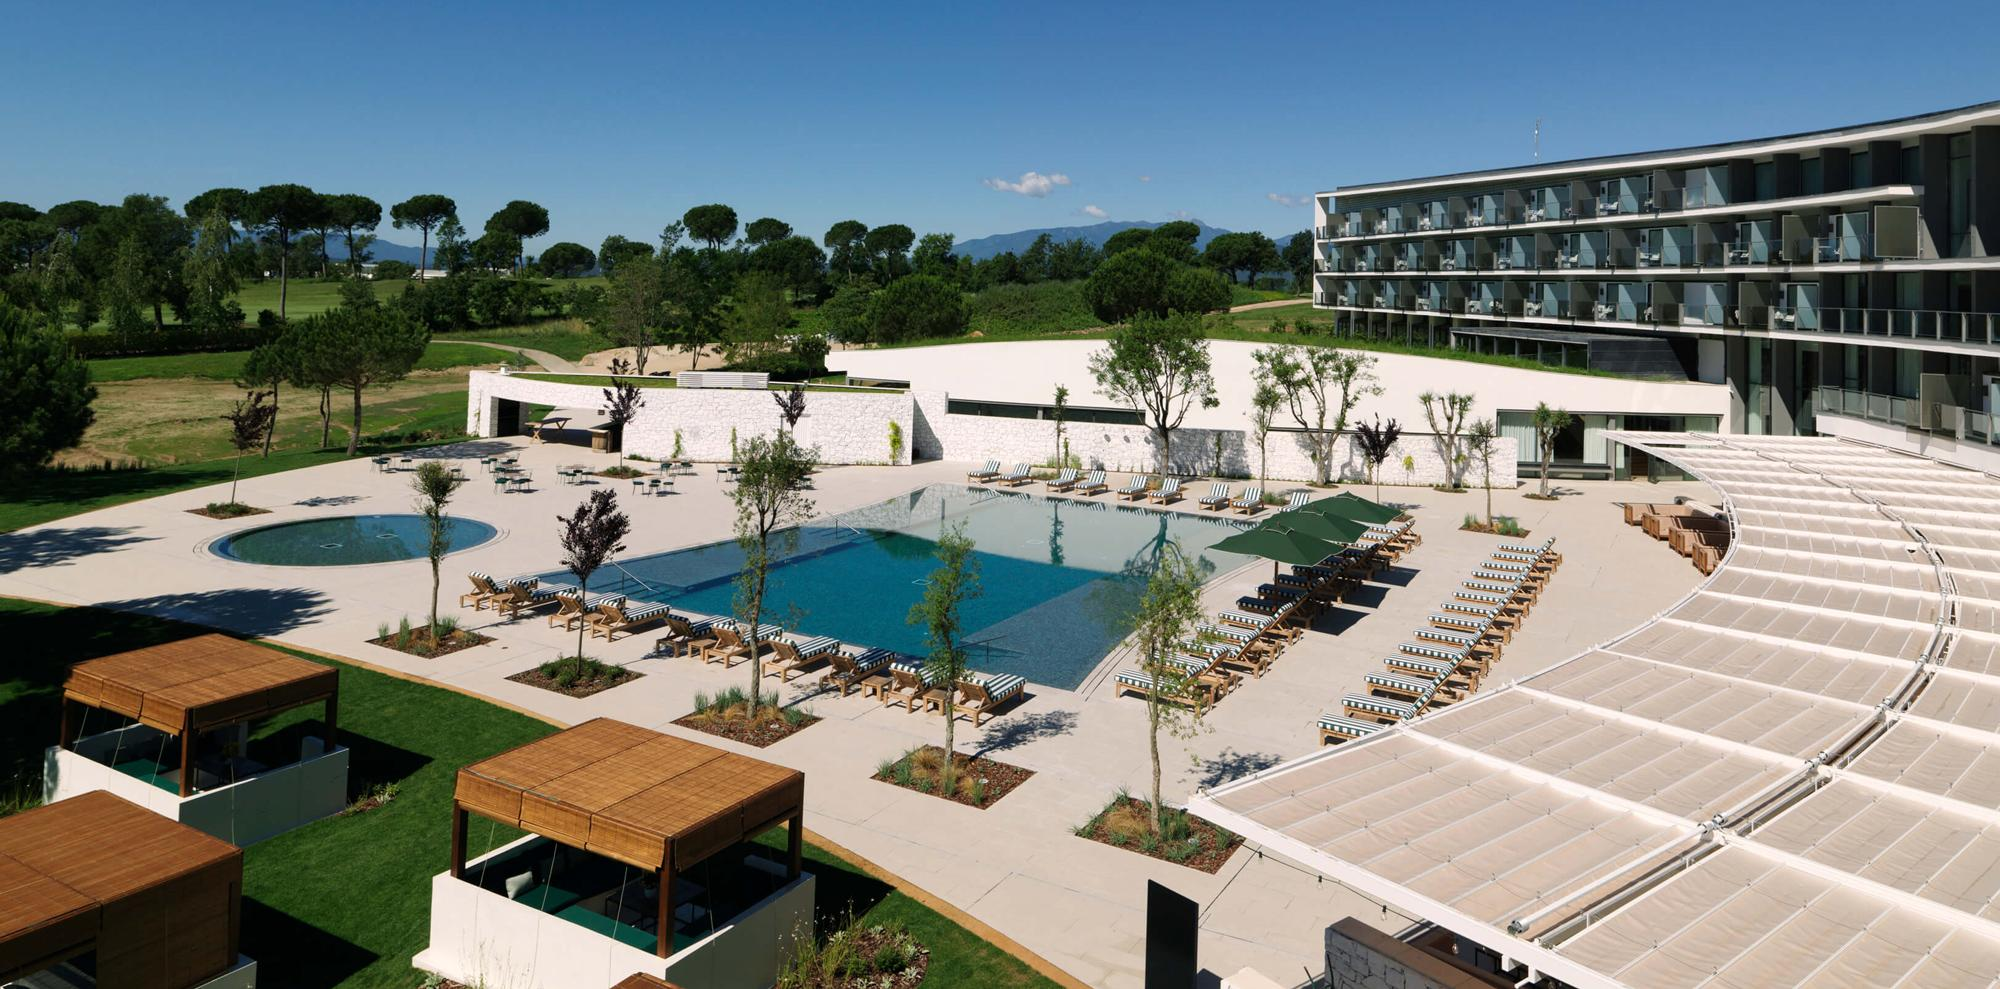 The Hotel Camiral's picturesque main pool in incredible Costa Brava.